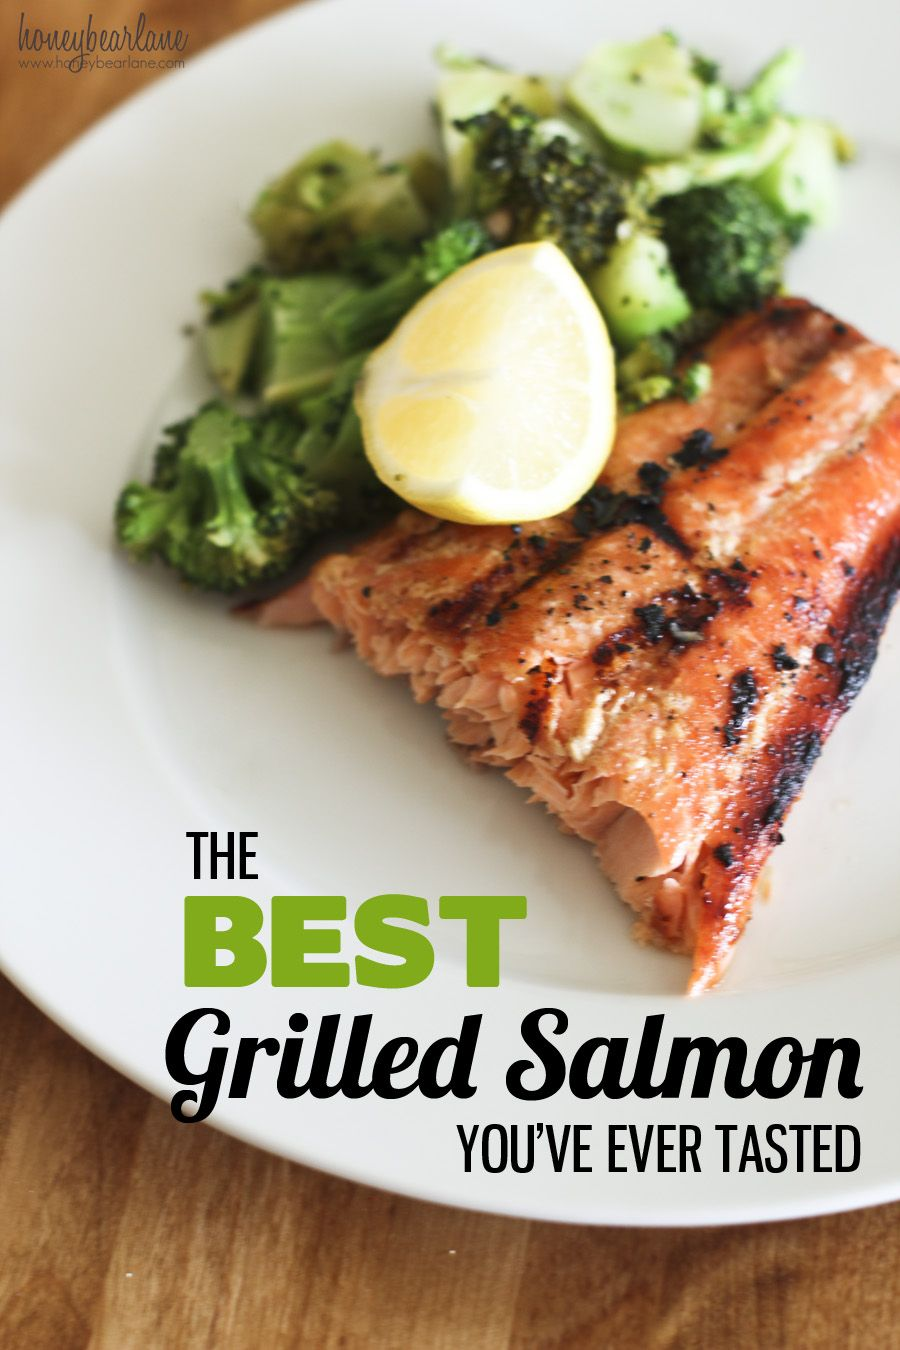 The Best Grilled Salmon Recipe Ever